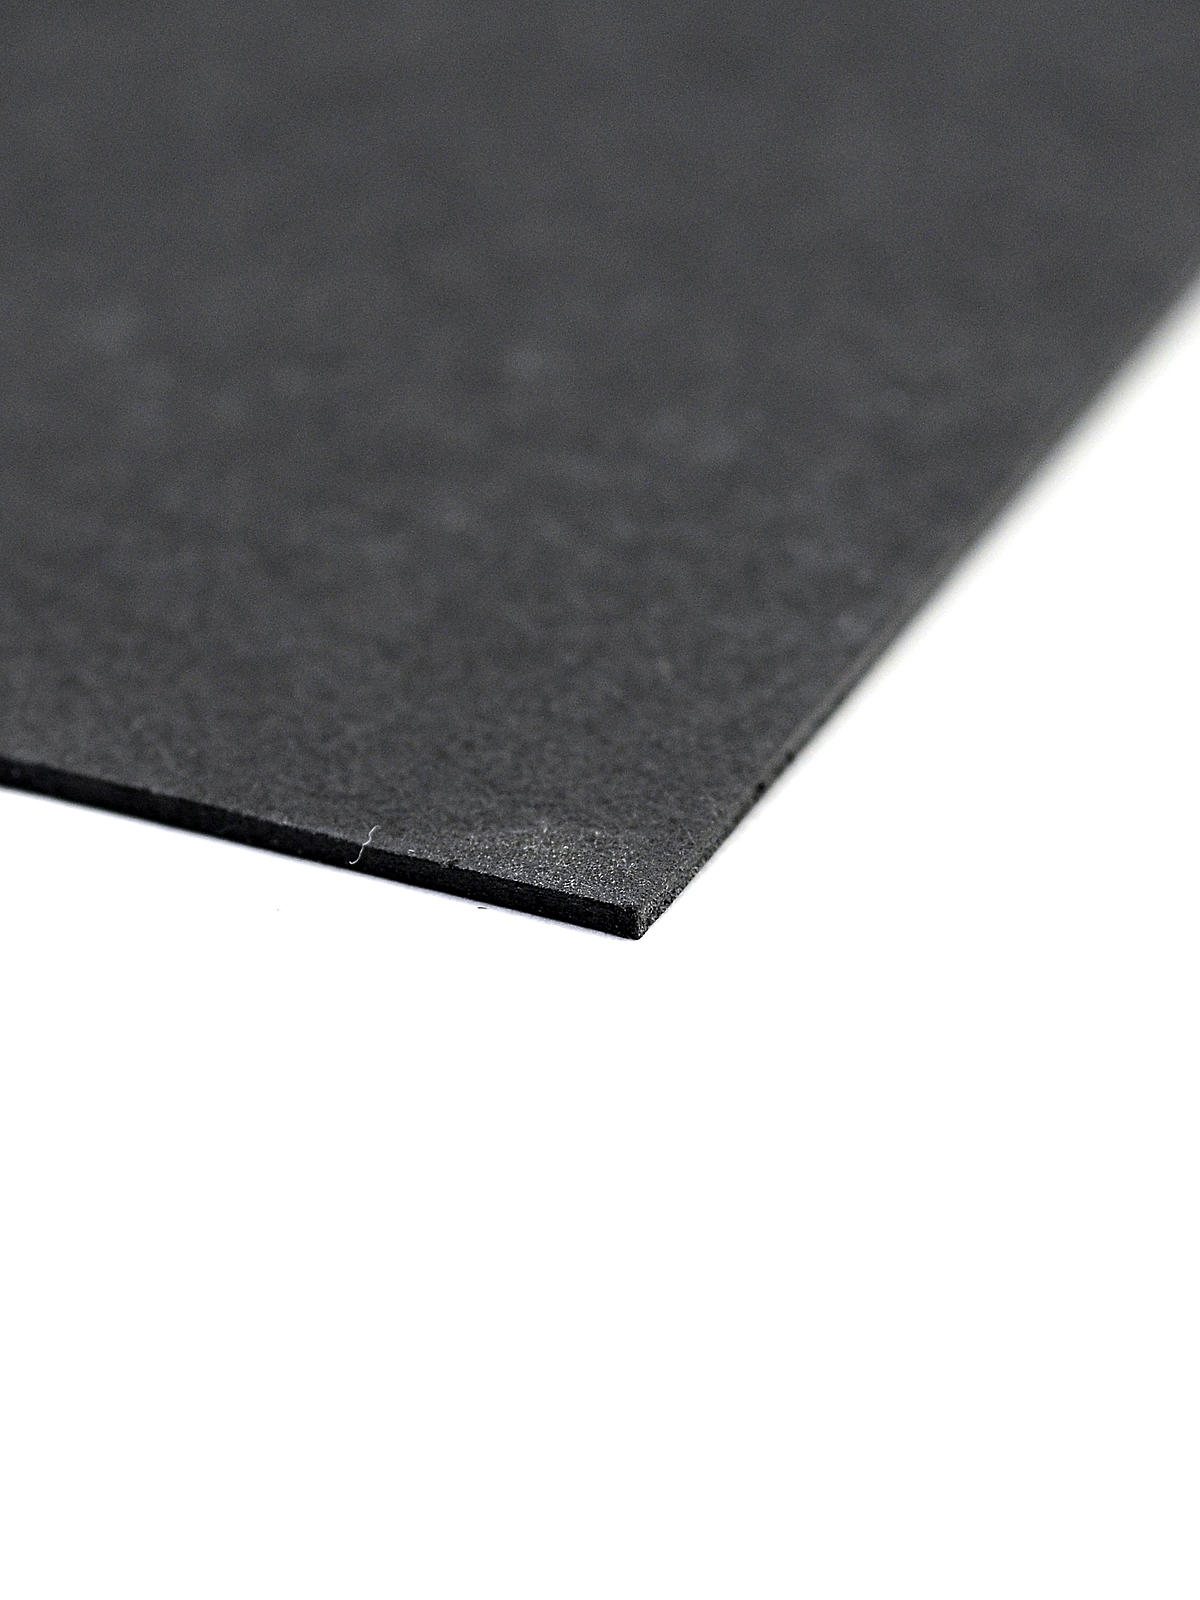 No. 100ST Super Black Mounting Board